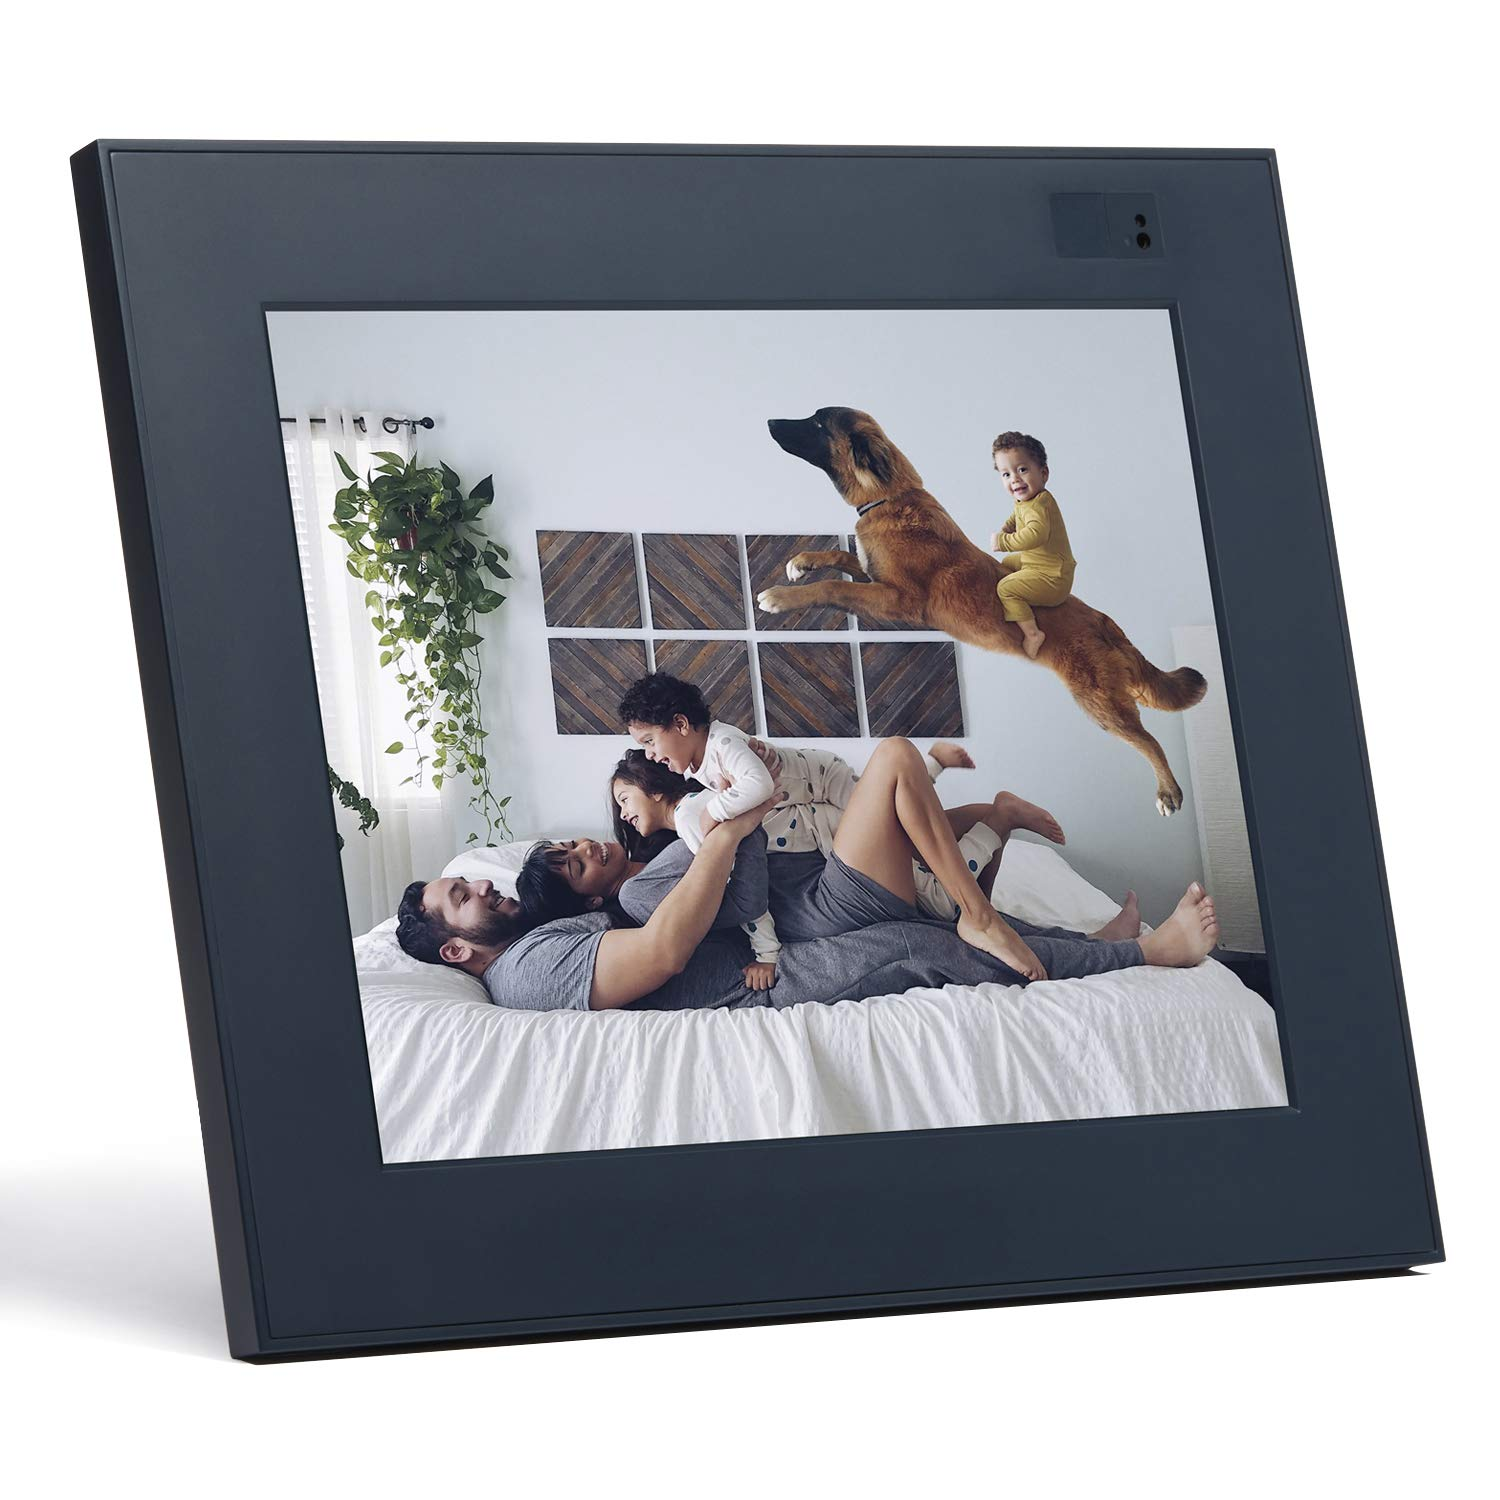 Aura Digital Photo Frame, 10'' HD Display, 2048 x 1536 Resolution with Free Cloud Storage, Oprah's Favorite Things List 2018, Slate WiFi Picture Frame